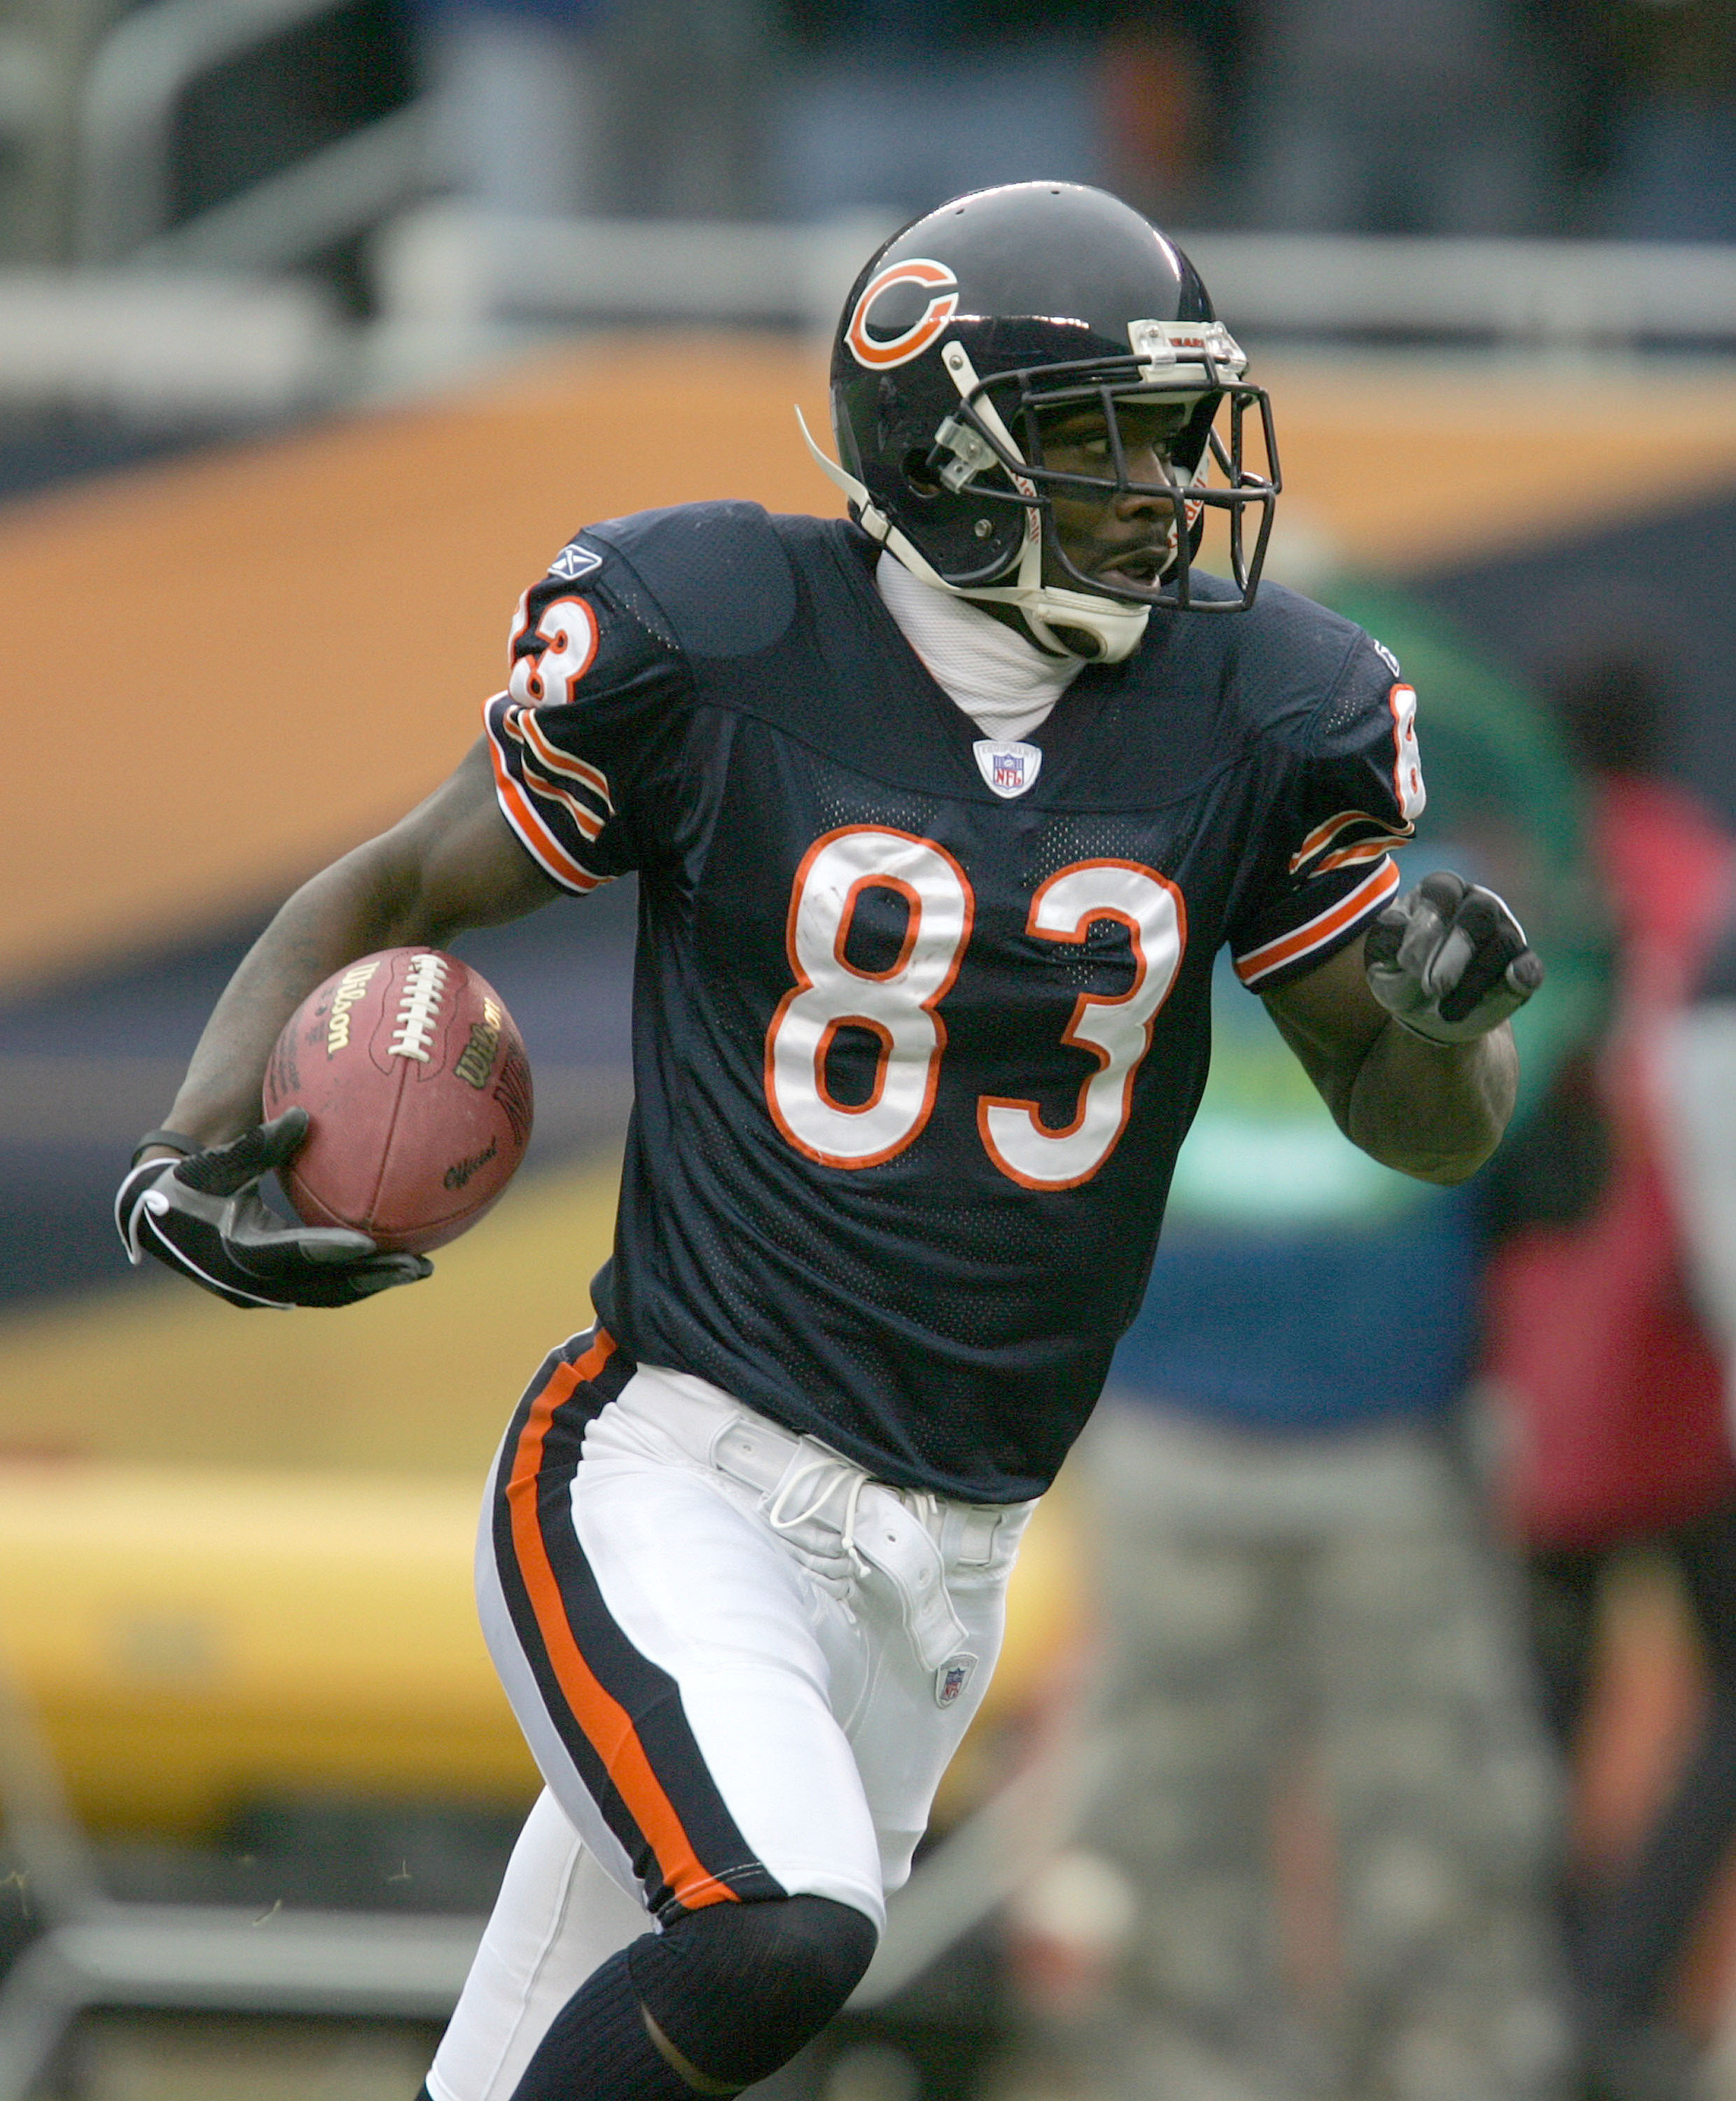 CHICAGO - JANUARY 2: Wide receiver David Terrell #83 of the Chicago Bears takes the ball 63 yards after a reception against the Green Bay Packers on January 2, 2005 at Soldier Field in Chicago, Illinois. (Photo by Jonathan Daniel/Getty Images)